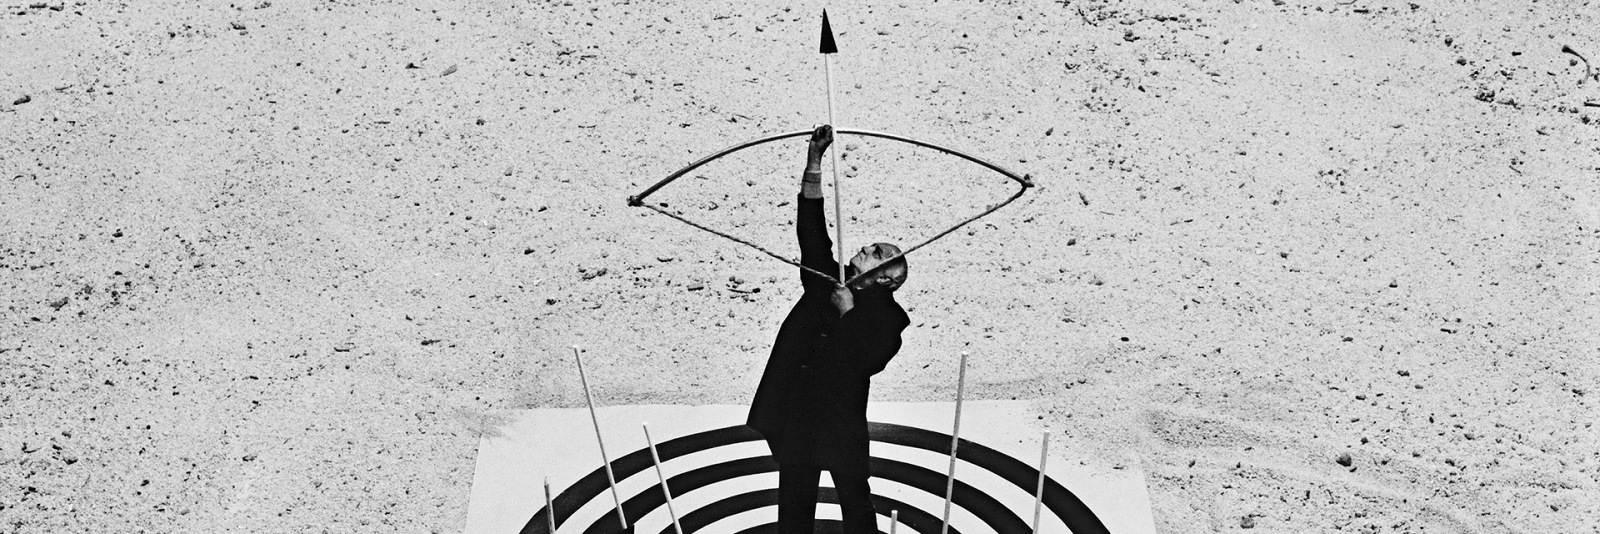 Gilbert Garcin, Mister G. life is surrea. © Gilbert Garcin.